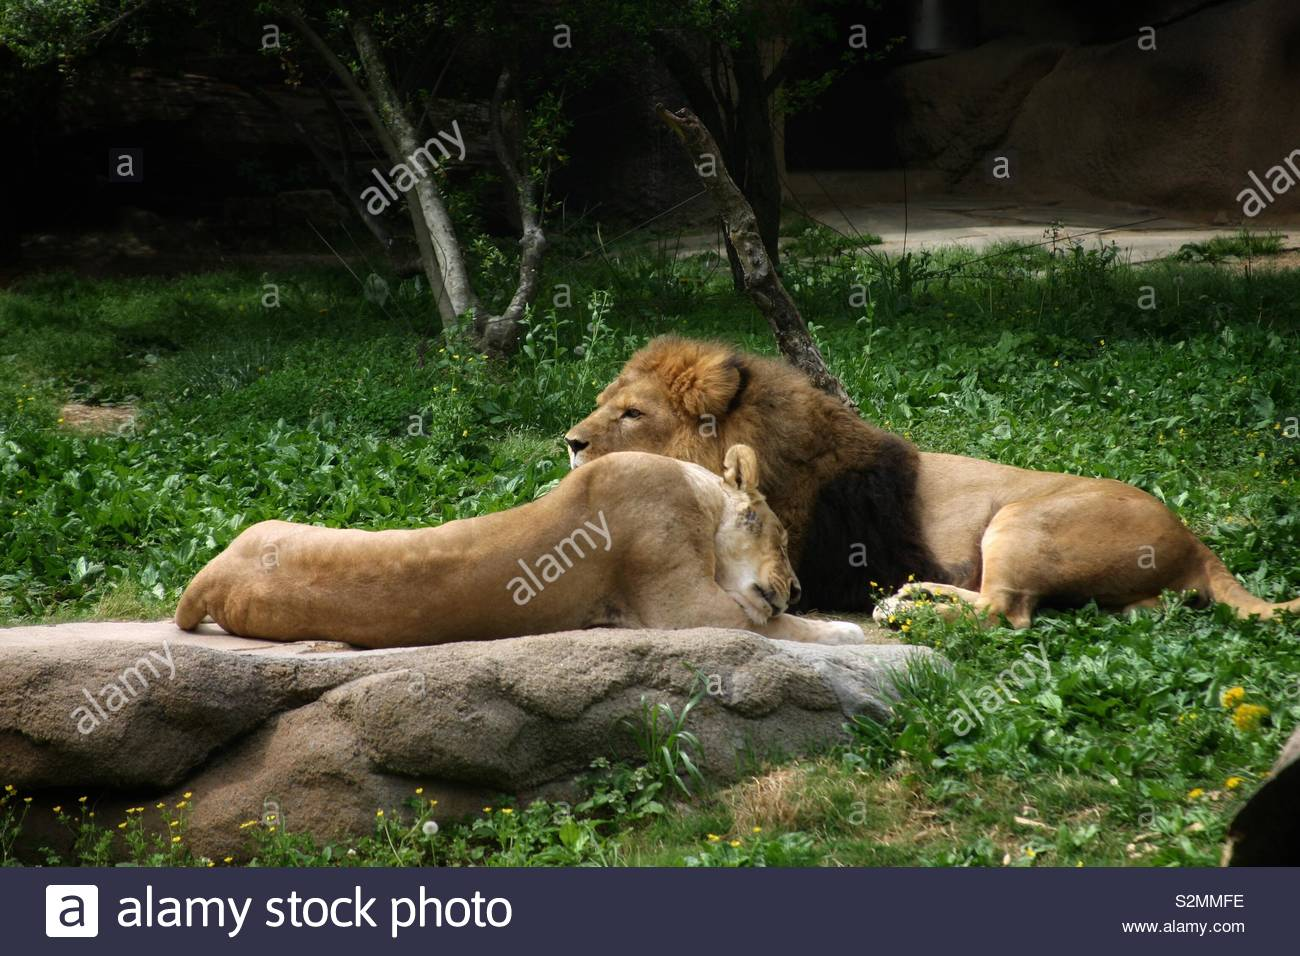 A lion and lioness take a nap. - Stock Image